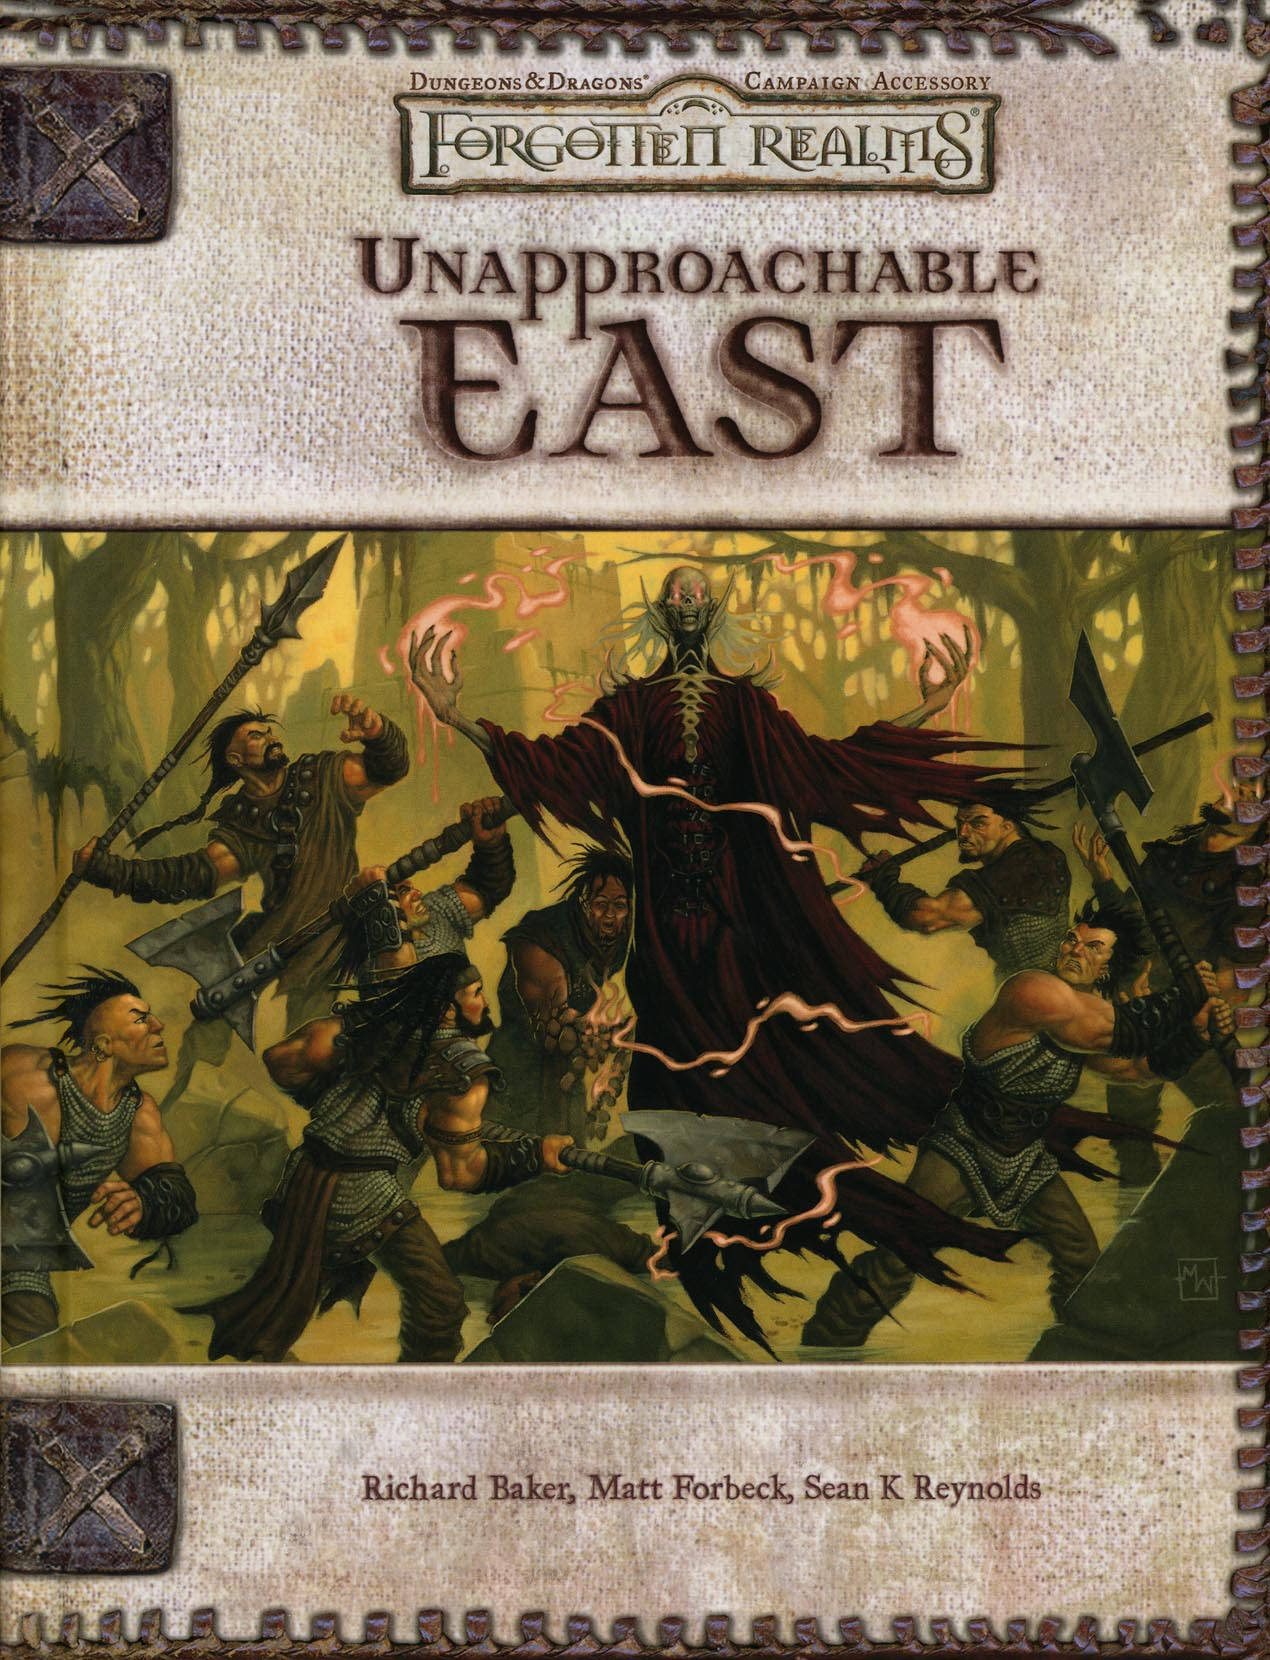 Unapproachable East (sourcebook)